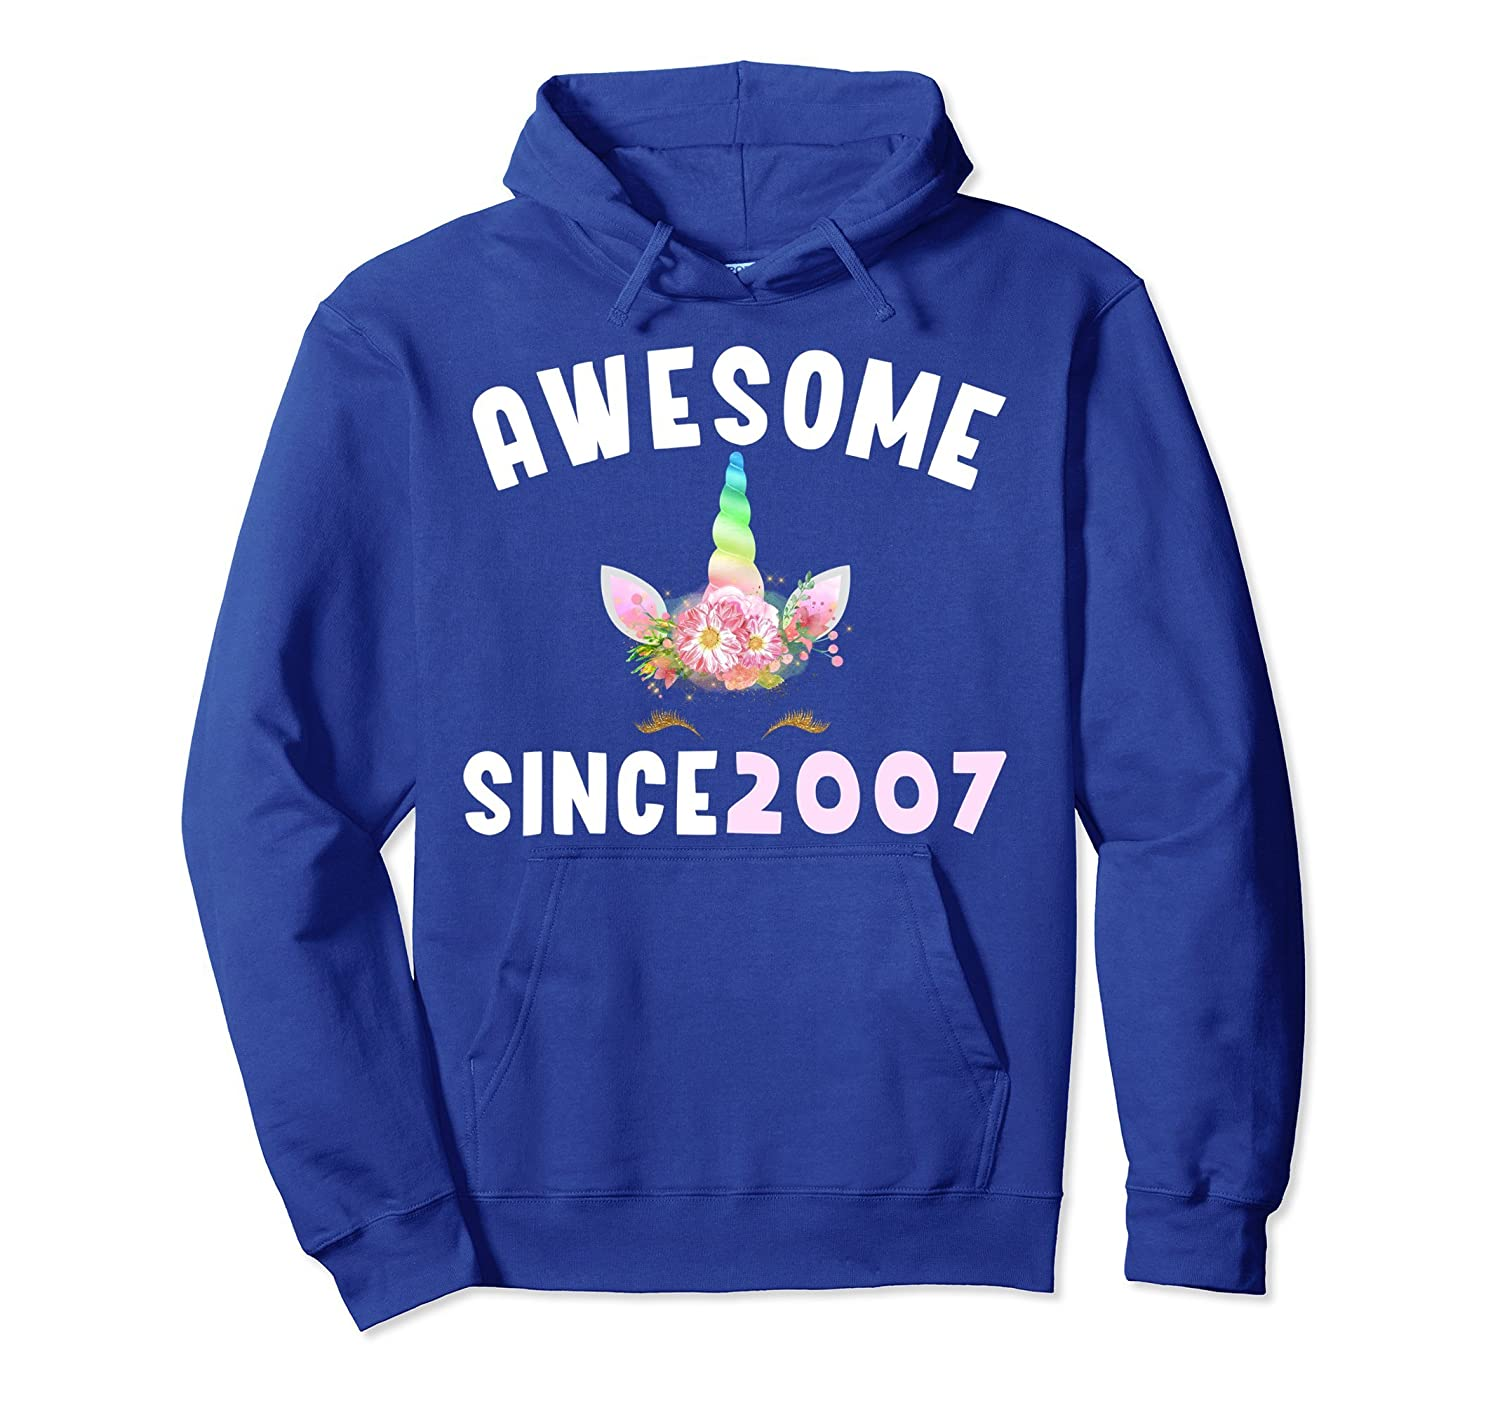 Awesome Unicorn 2007 Birthday BDay Girls Outfit Hoodie Shirt-mt